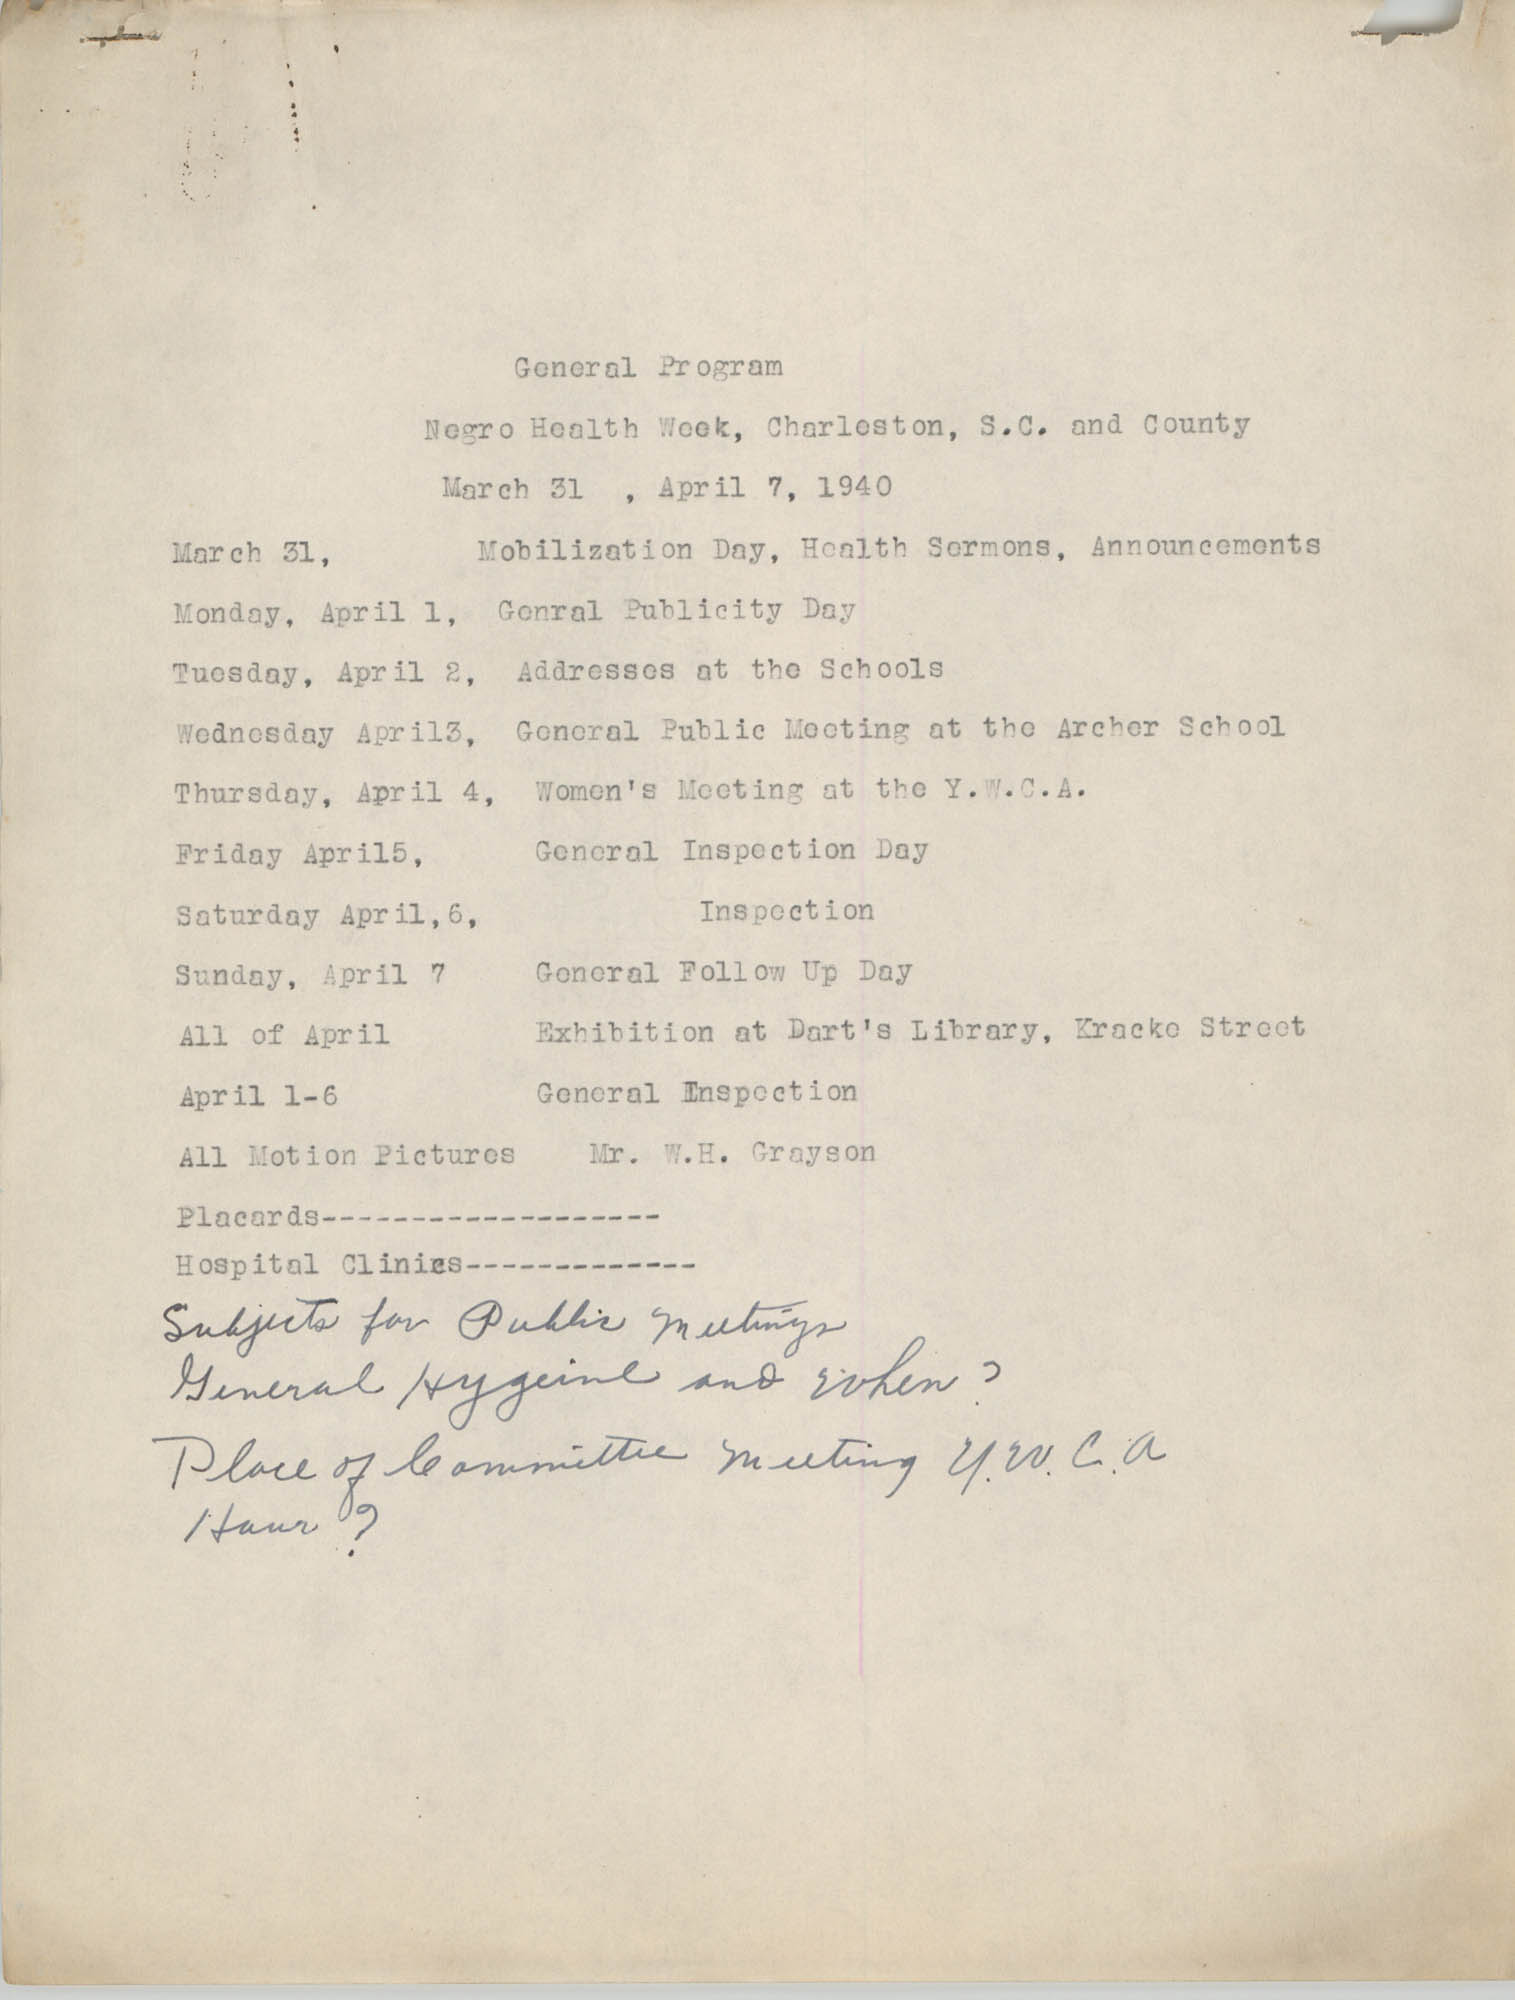 General Program for Negro Health Week, March 31 to April 7, 1940